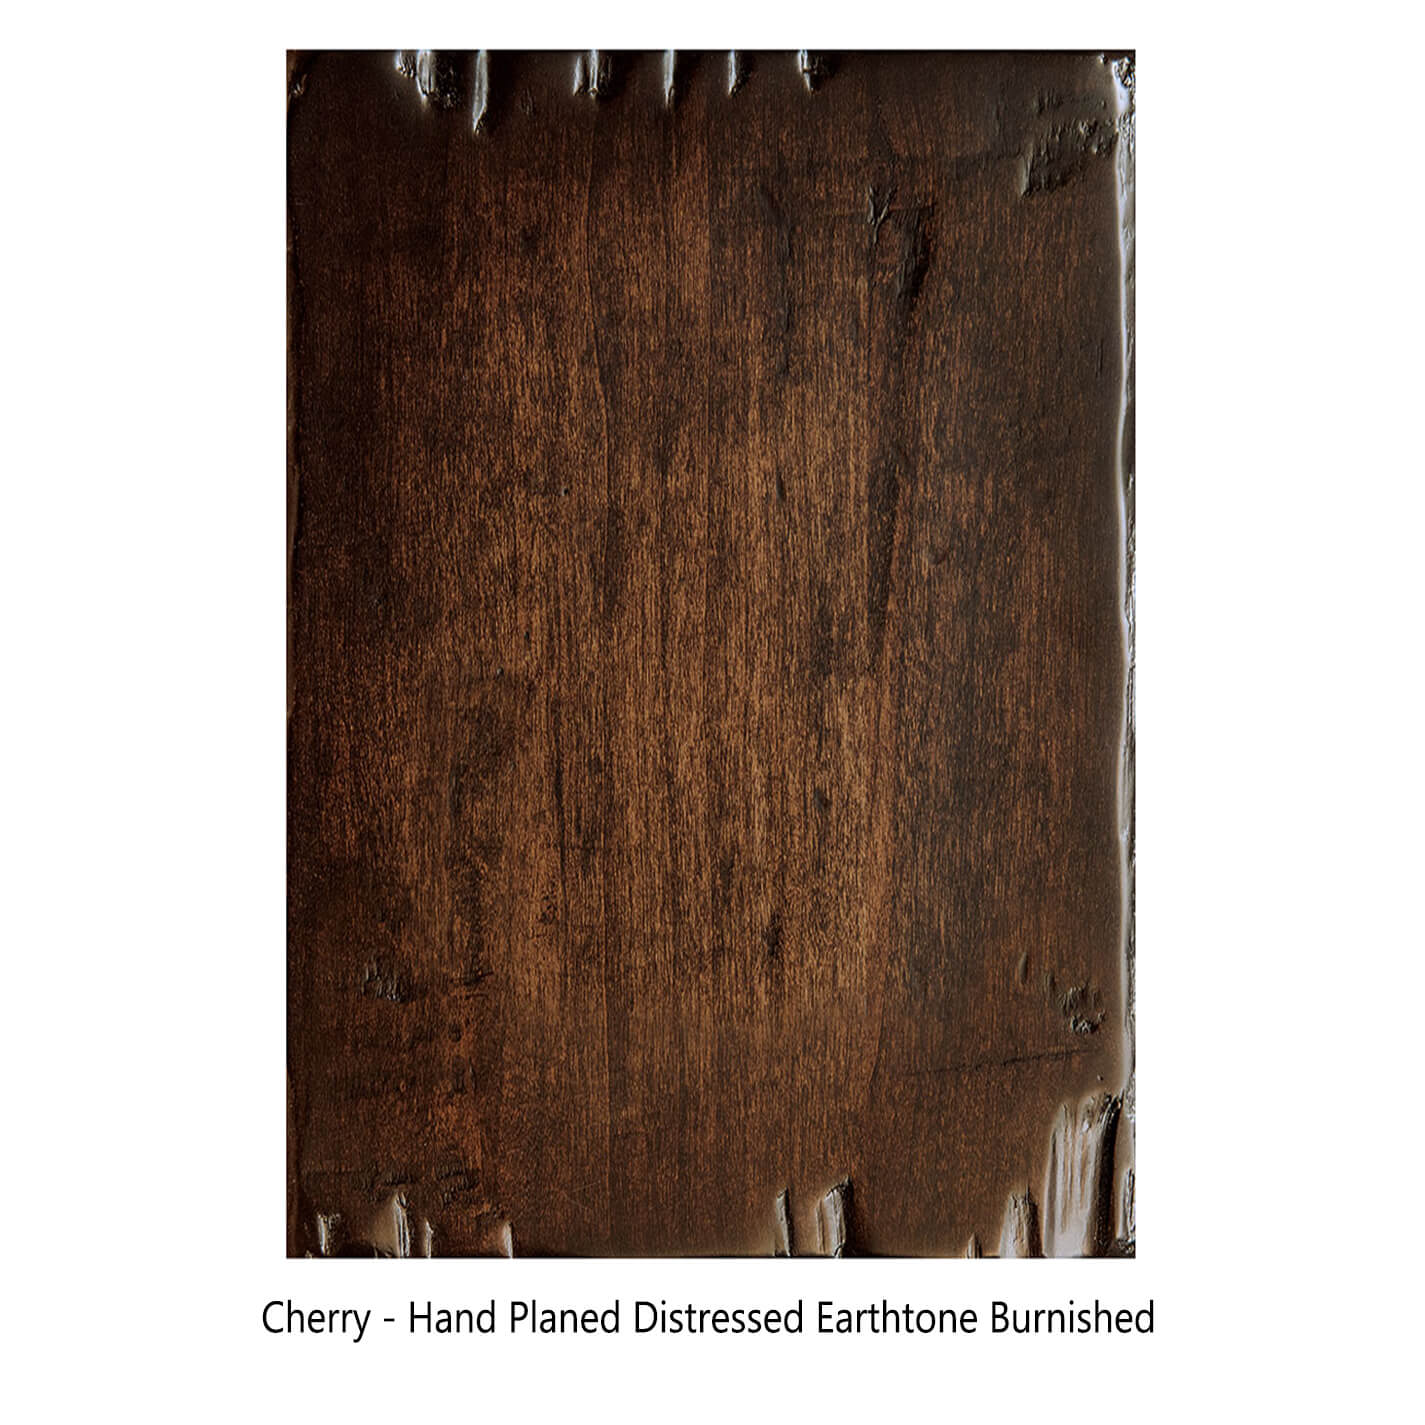 cherry-hand-planed-distressed-earthtone-burnished-category-4-10-sheen-copy.jpg